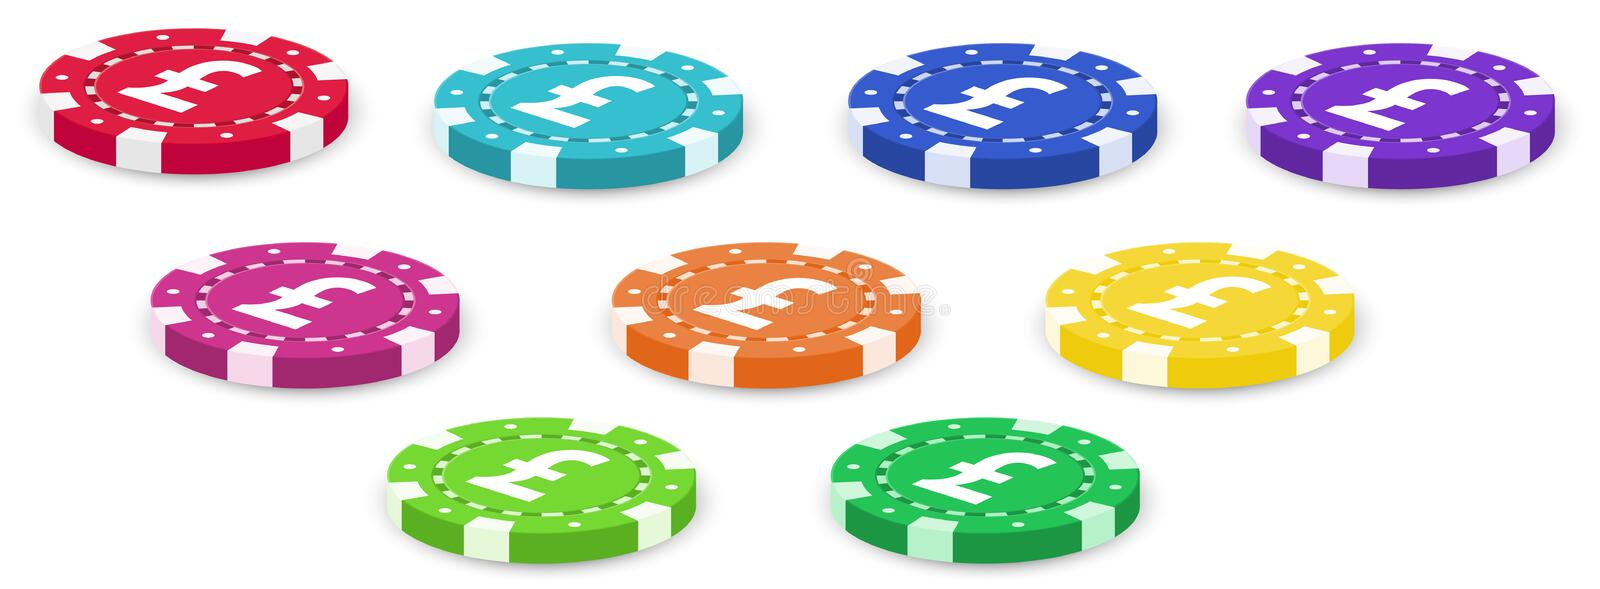 A group of colorful poker chips stock illustration